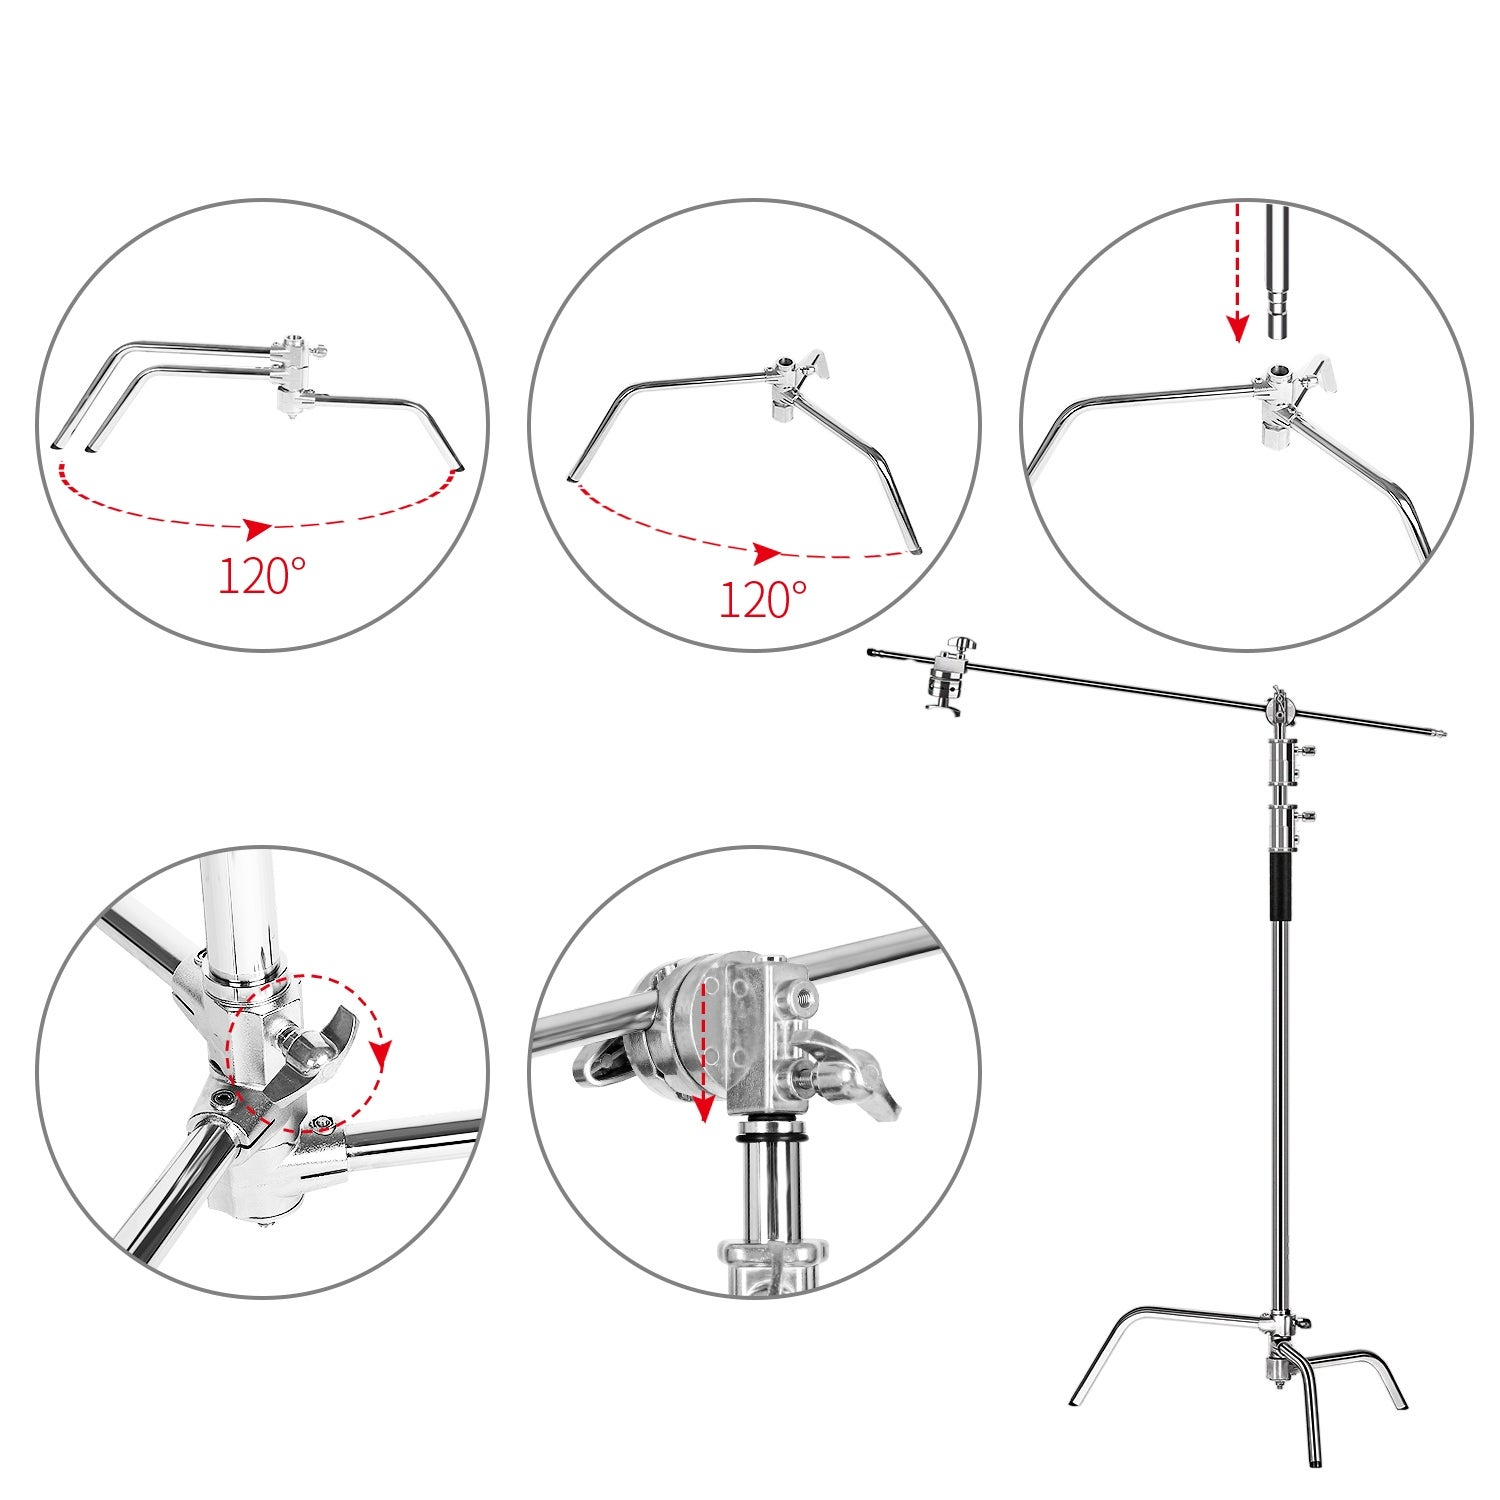 Kshioe 40 Photo Studio Adjustable Lighting Umbrella Stands With Holding Arm Overstock 31144247